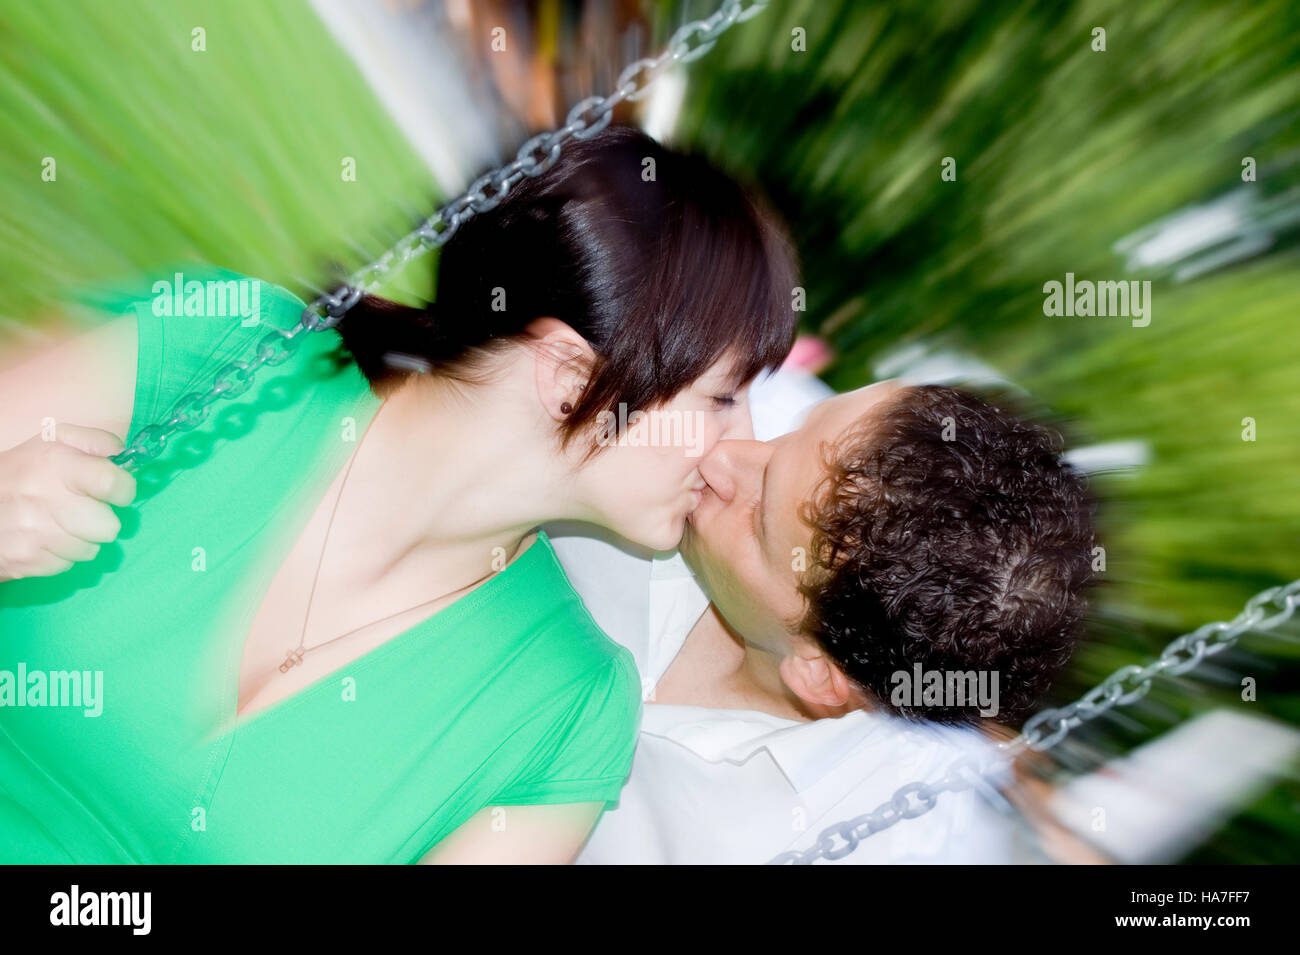 Young woman being kissed by a man while sitting on a swing - Stock Image